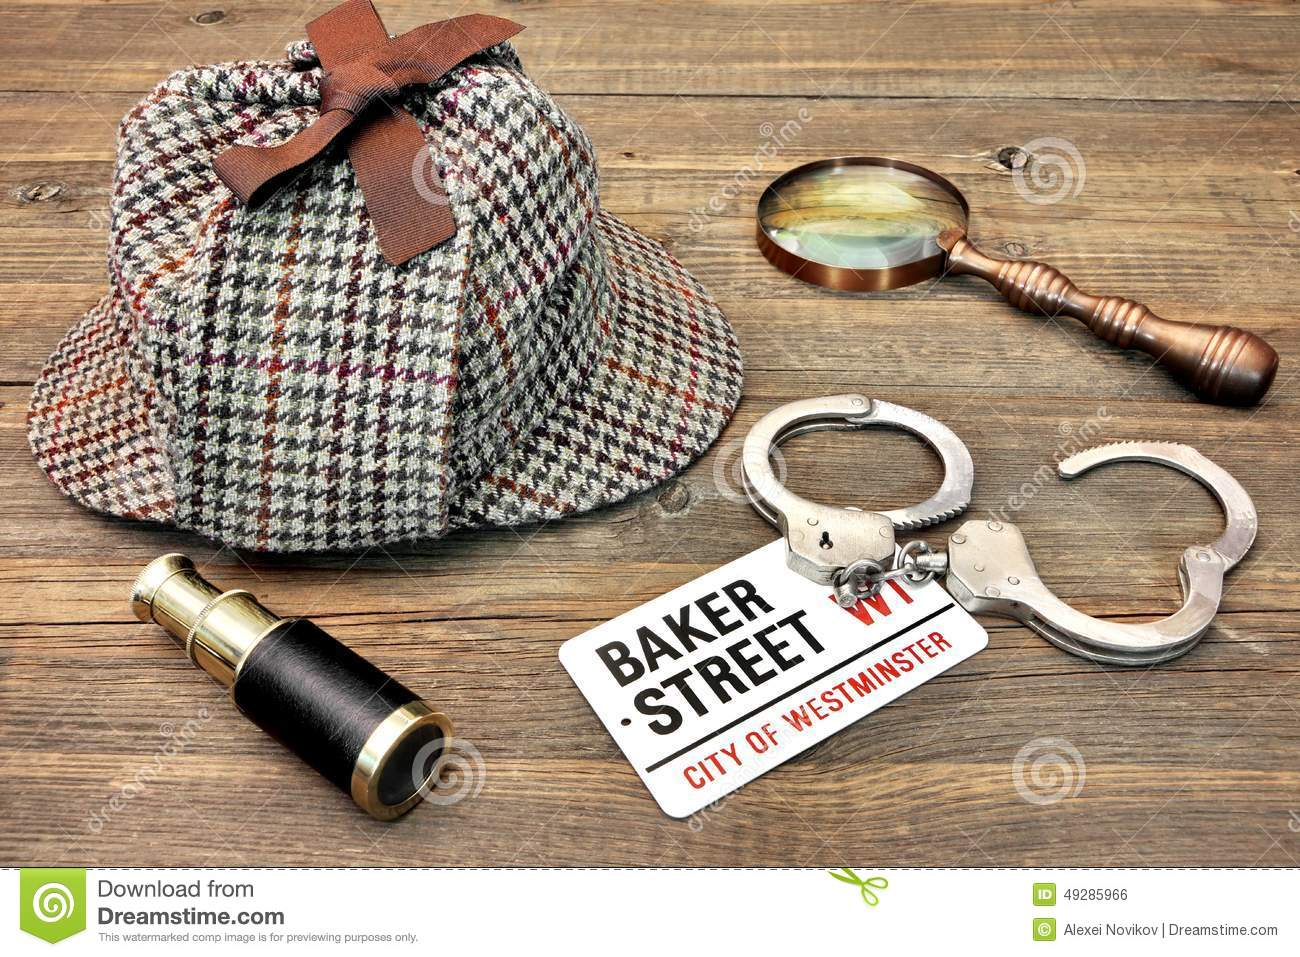 Detective Hat, Spyglass and Magnifier, sign Baker Street and han